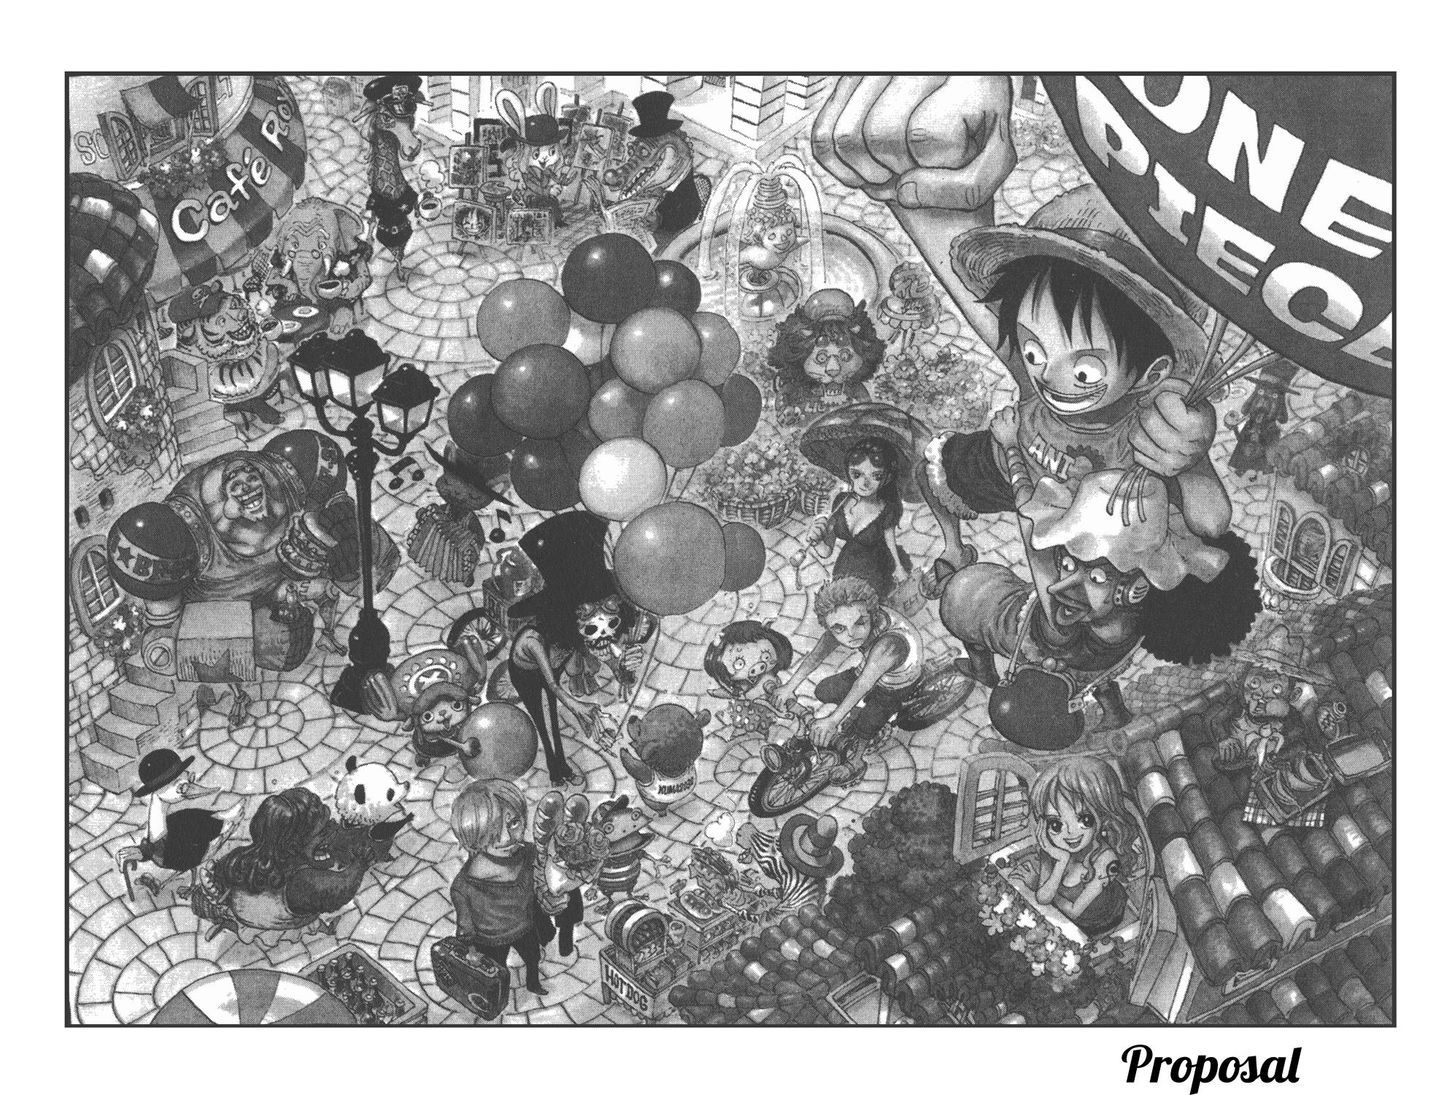 https://im.nineanime.com/comics/pic9/32/96/2967/OnePiece6180783.jpg Page 1